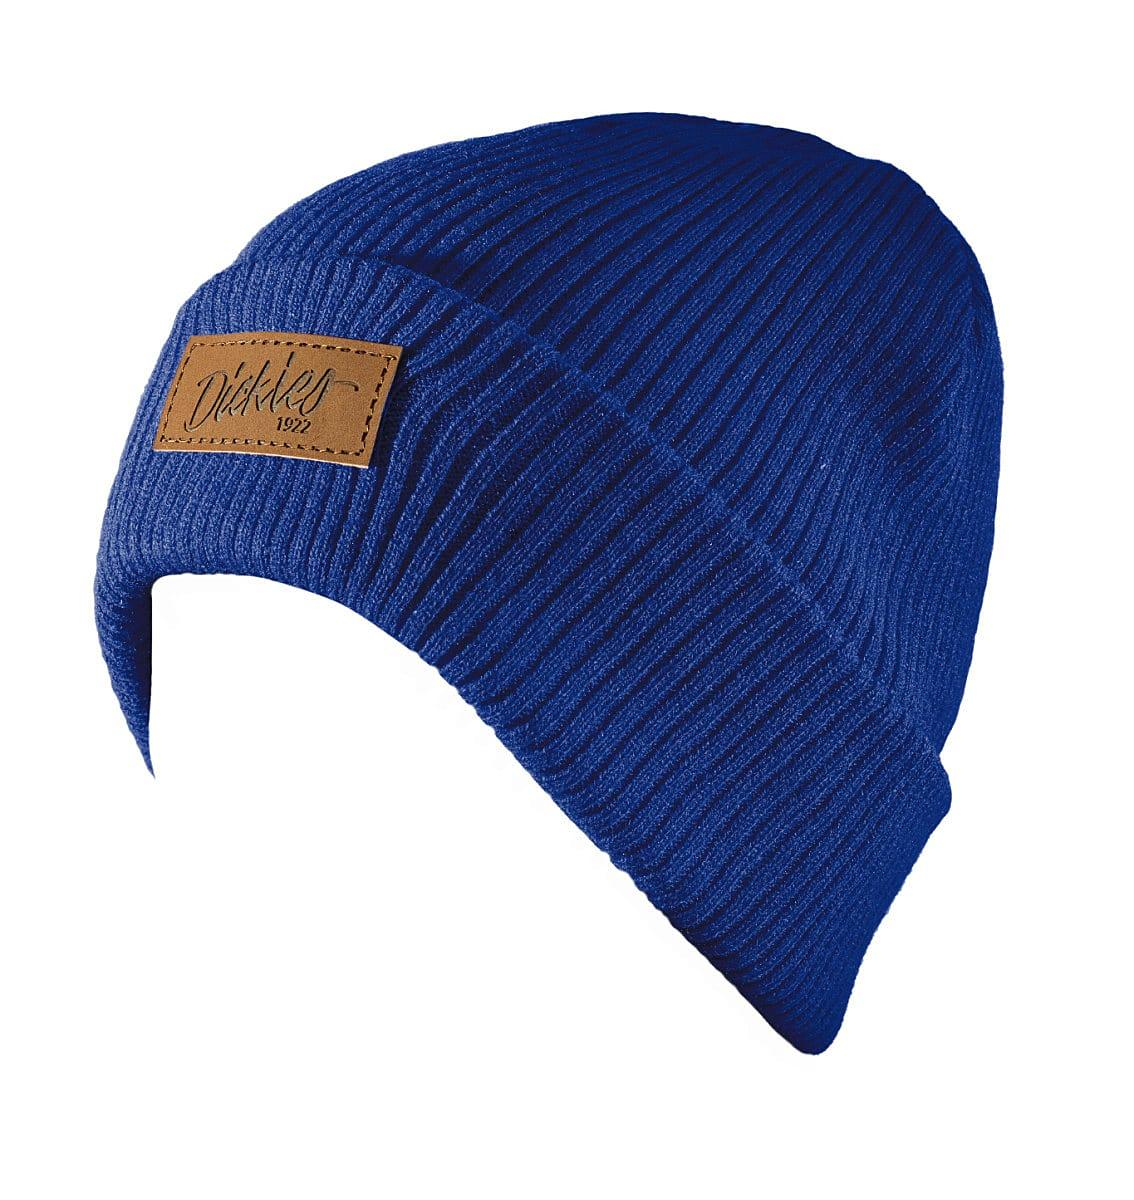 Dickies Evadale Branded Beanie Hat in Royal Blue (Product Code: DT8003)